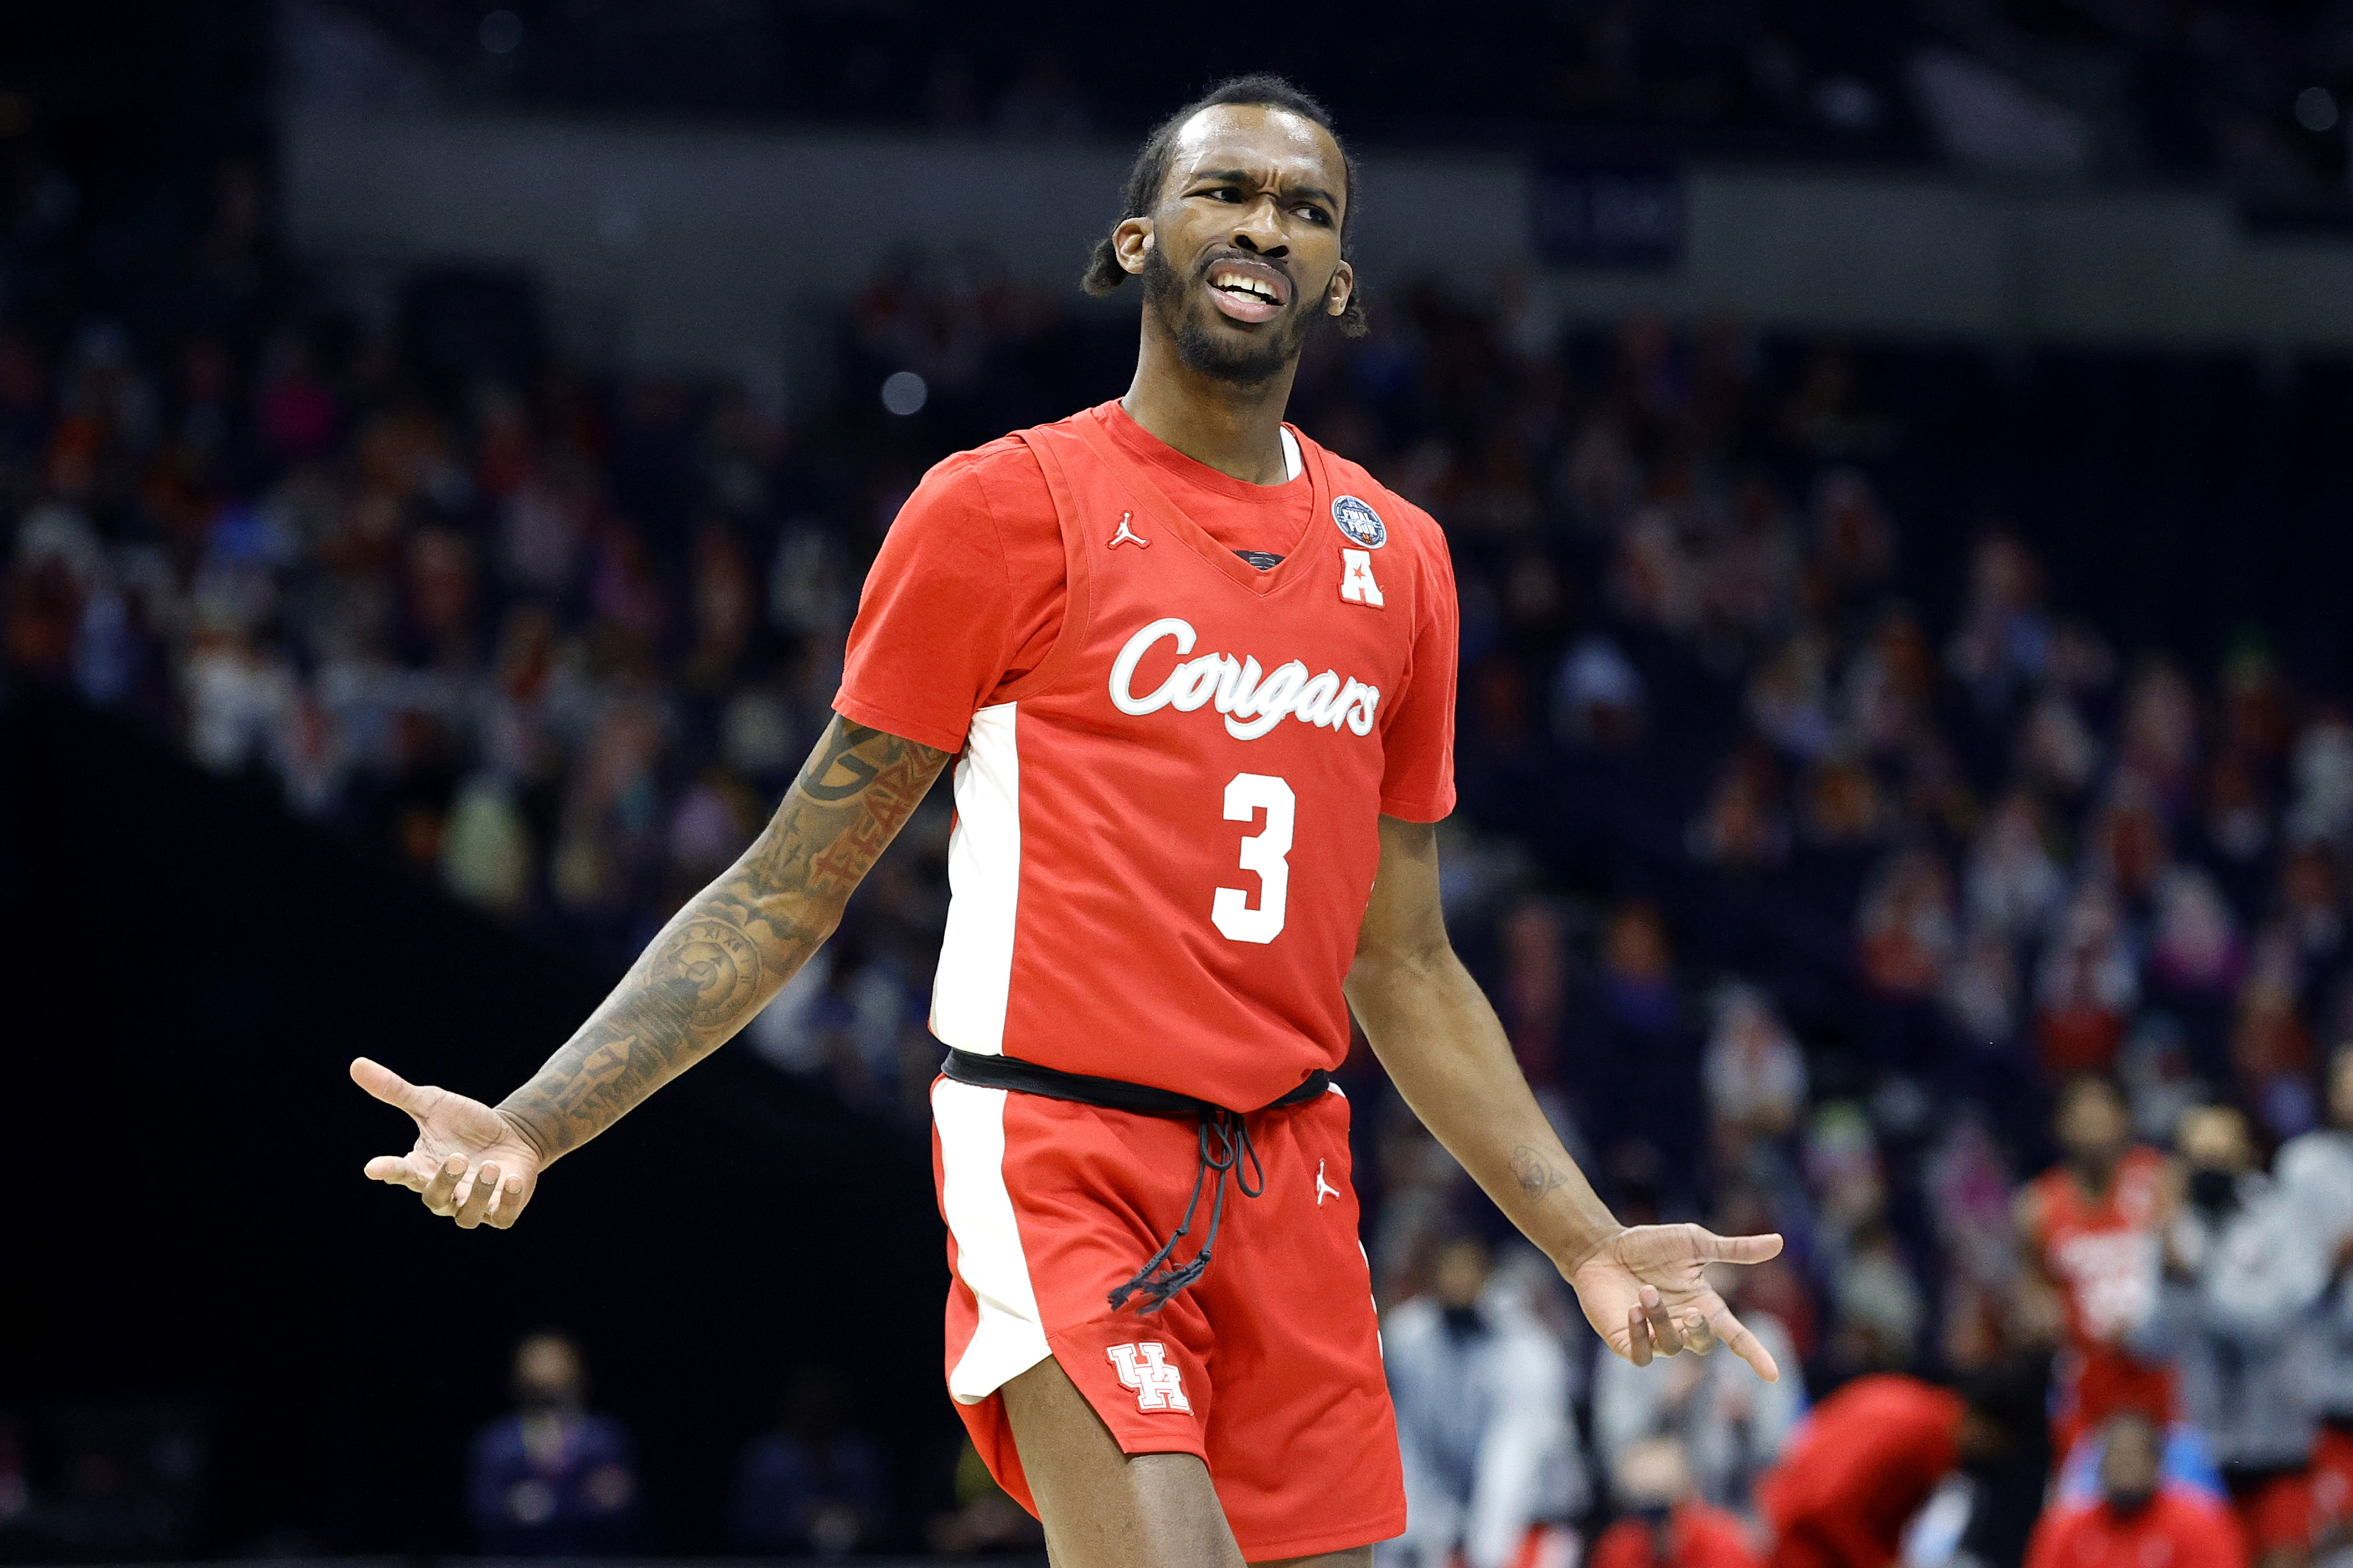 INDIANAPOLIS, INDIANA - APRIL 03: DeJon Jarreau #3 of the Houston Cougars reacts in the first half against the Baylor Bears during the 2021 NCAA Final Four semifinal at Lucas Oil Stadium on April 03, 2021 in Indianapolis, Indiana.